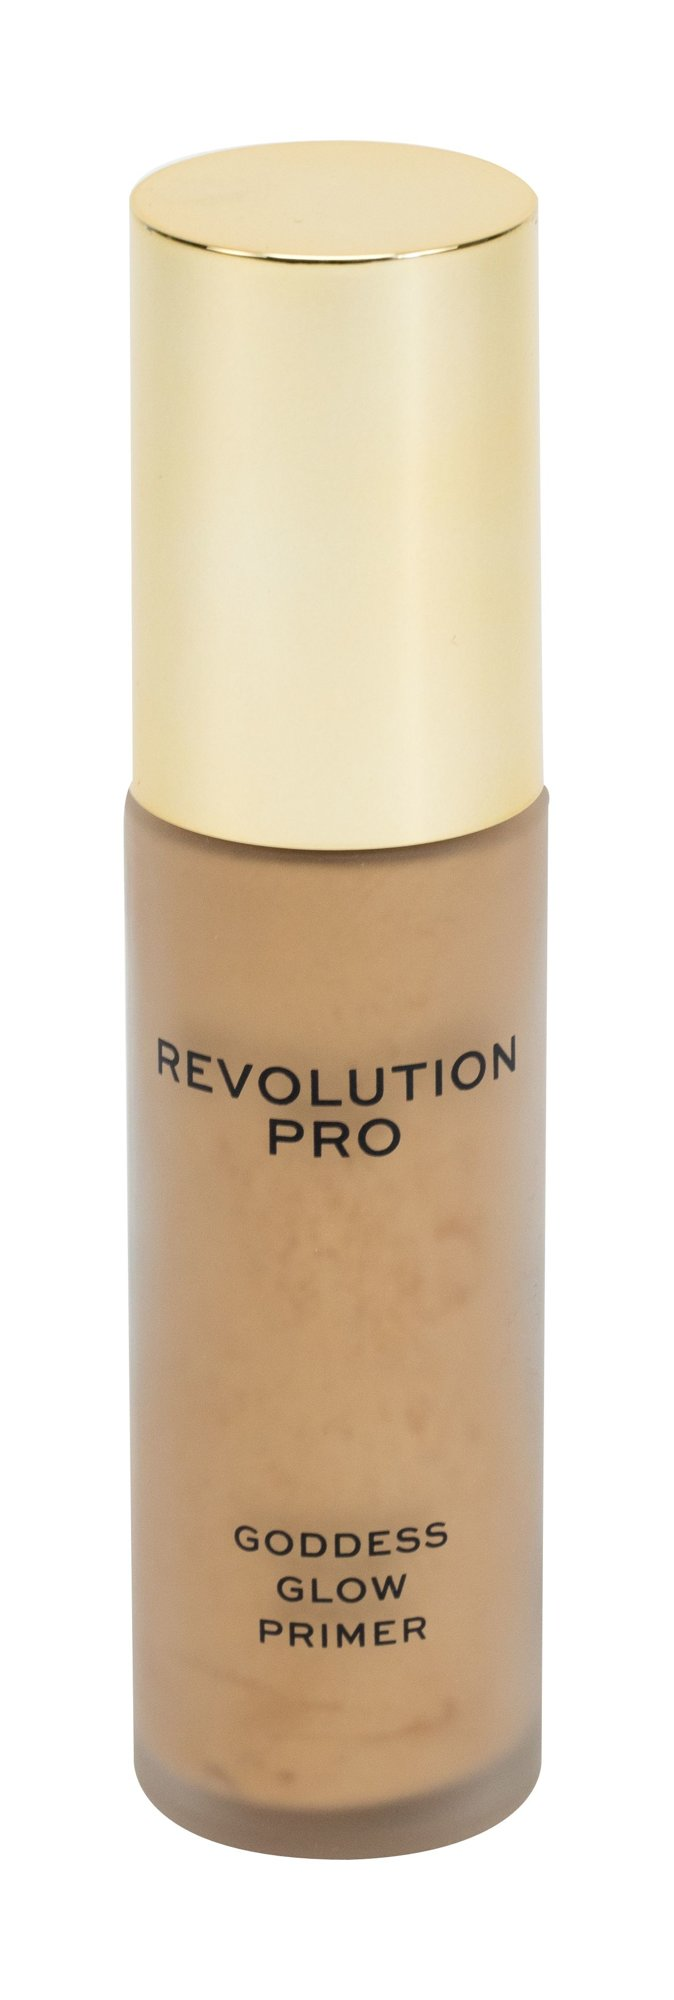 Makeup Revolution London Revolution PRO  Podklad pod makeup, W, 30 ml